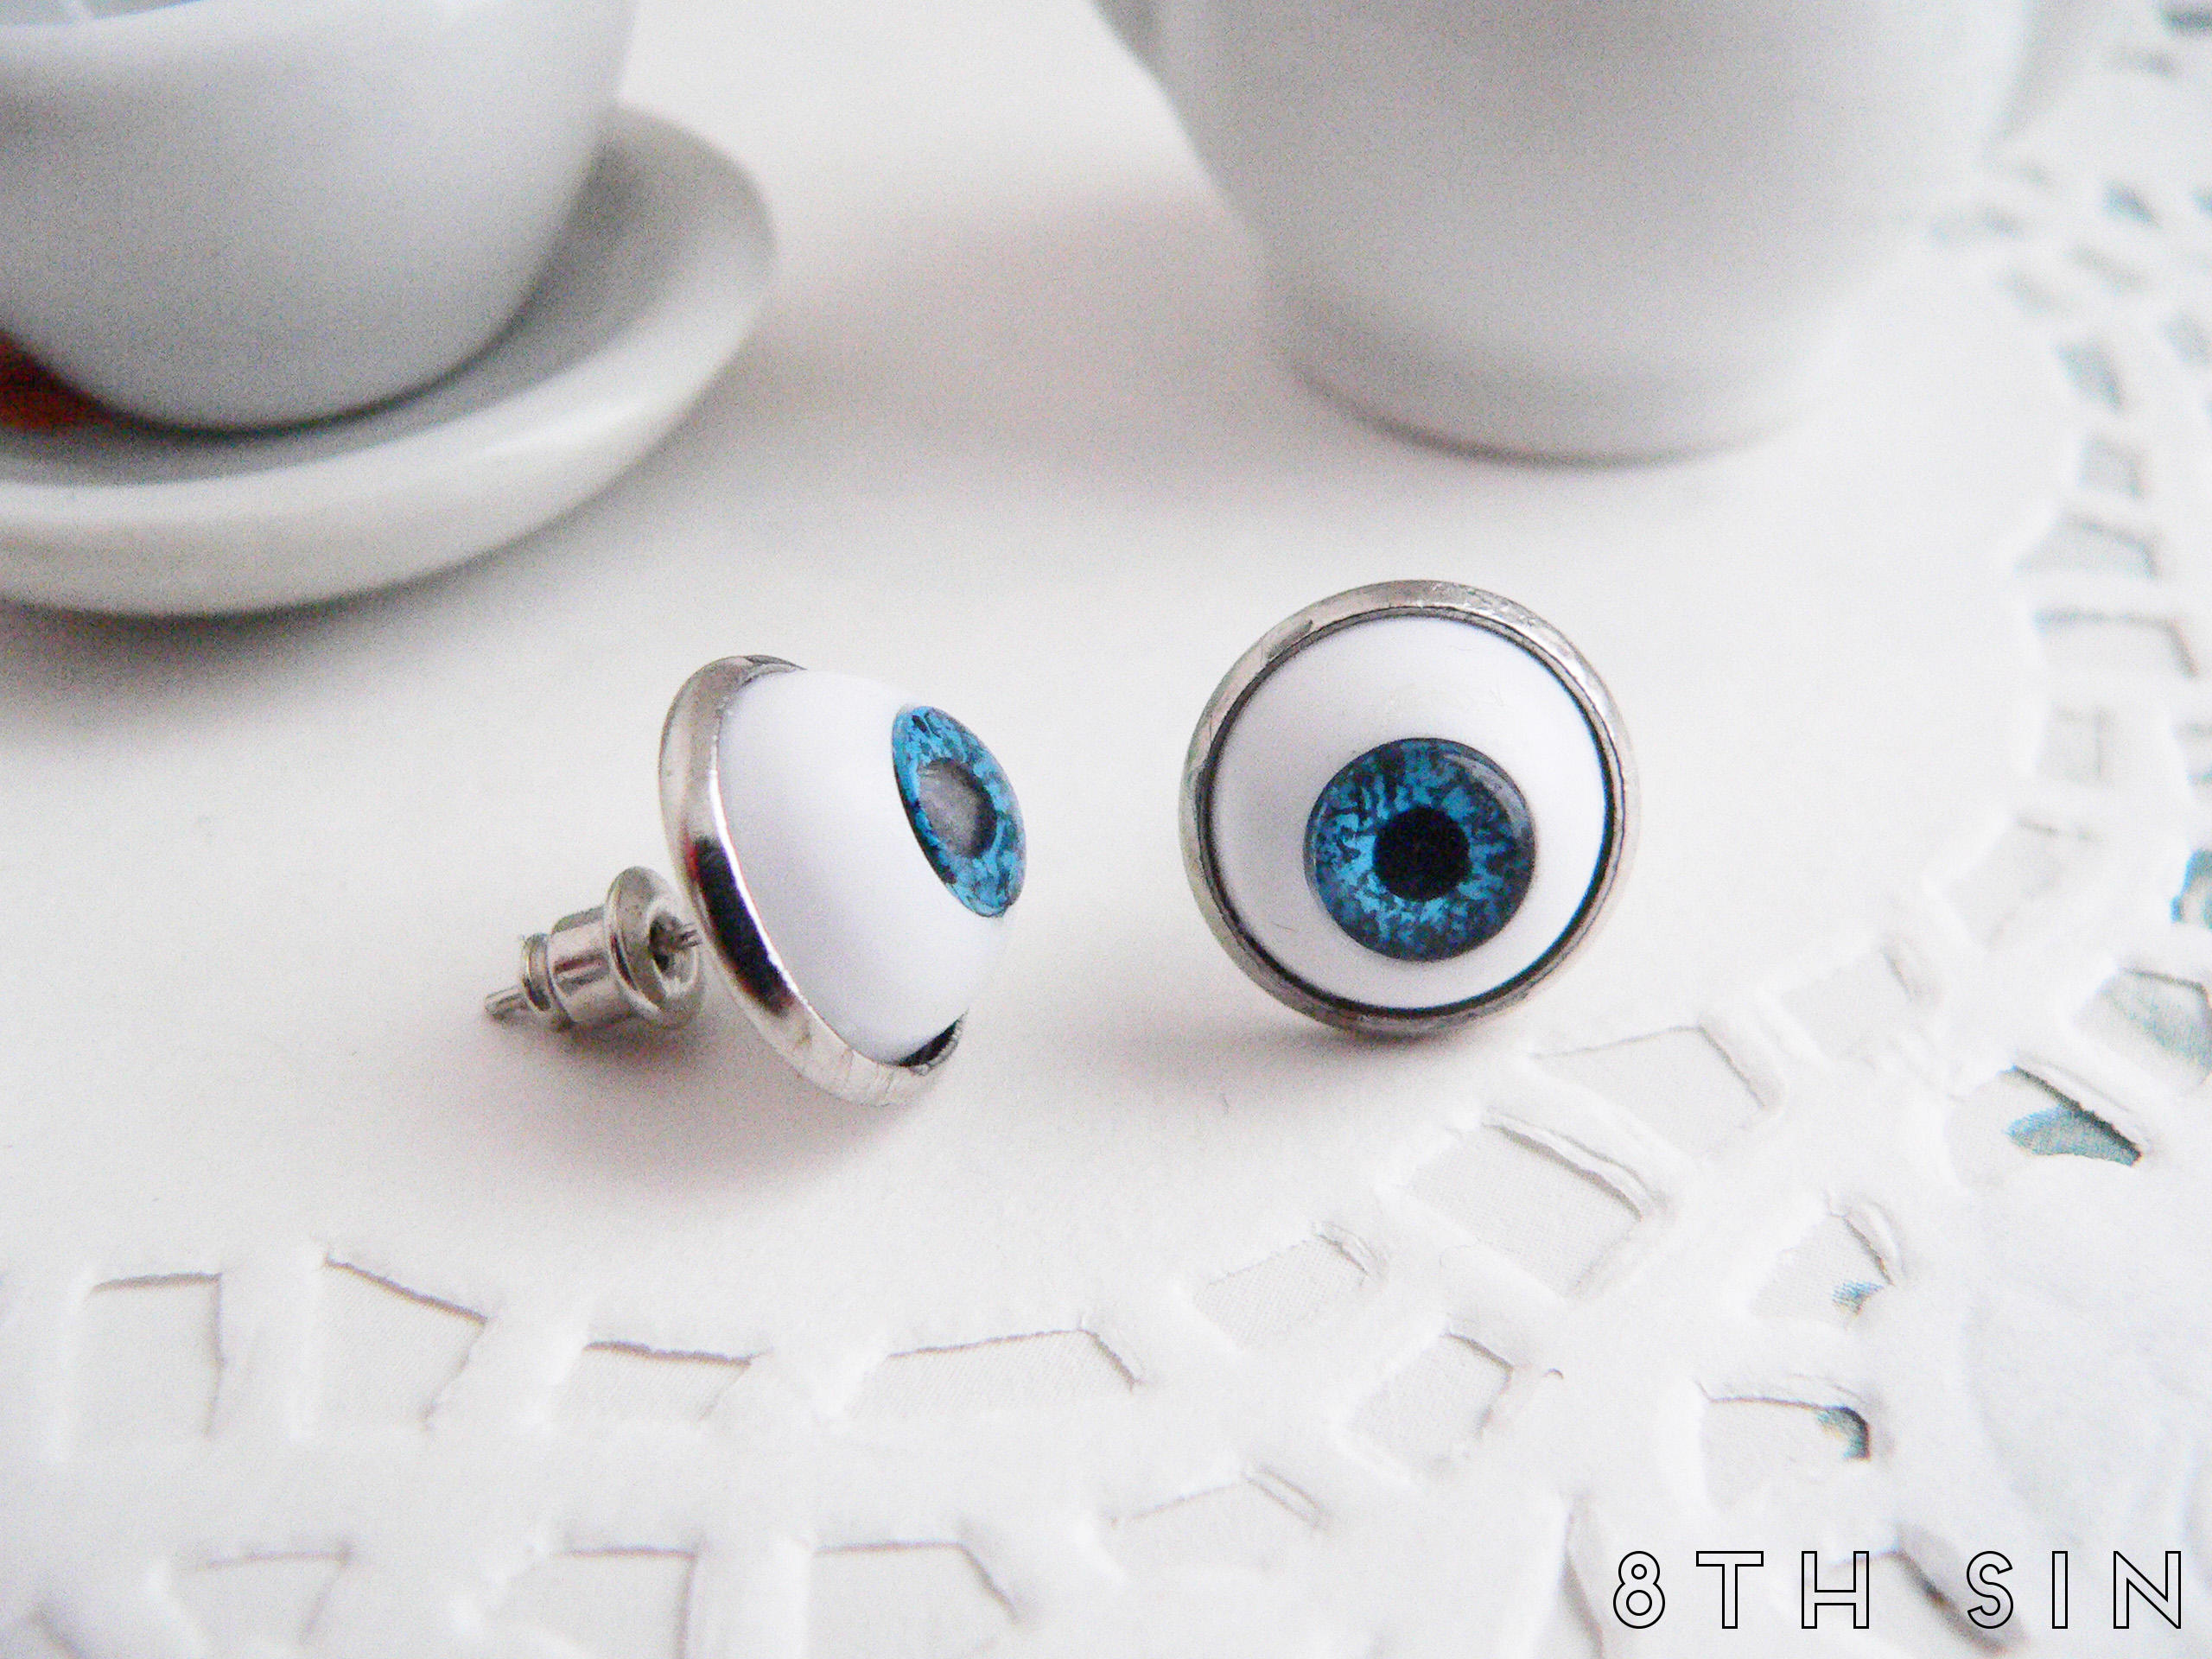 antique silver and blue eyeball earrings